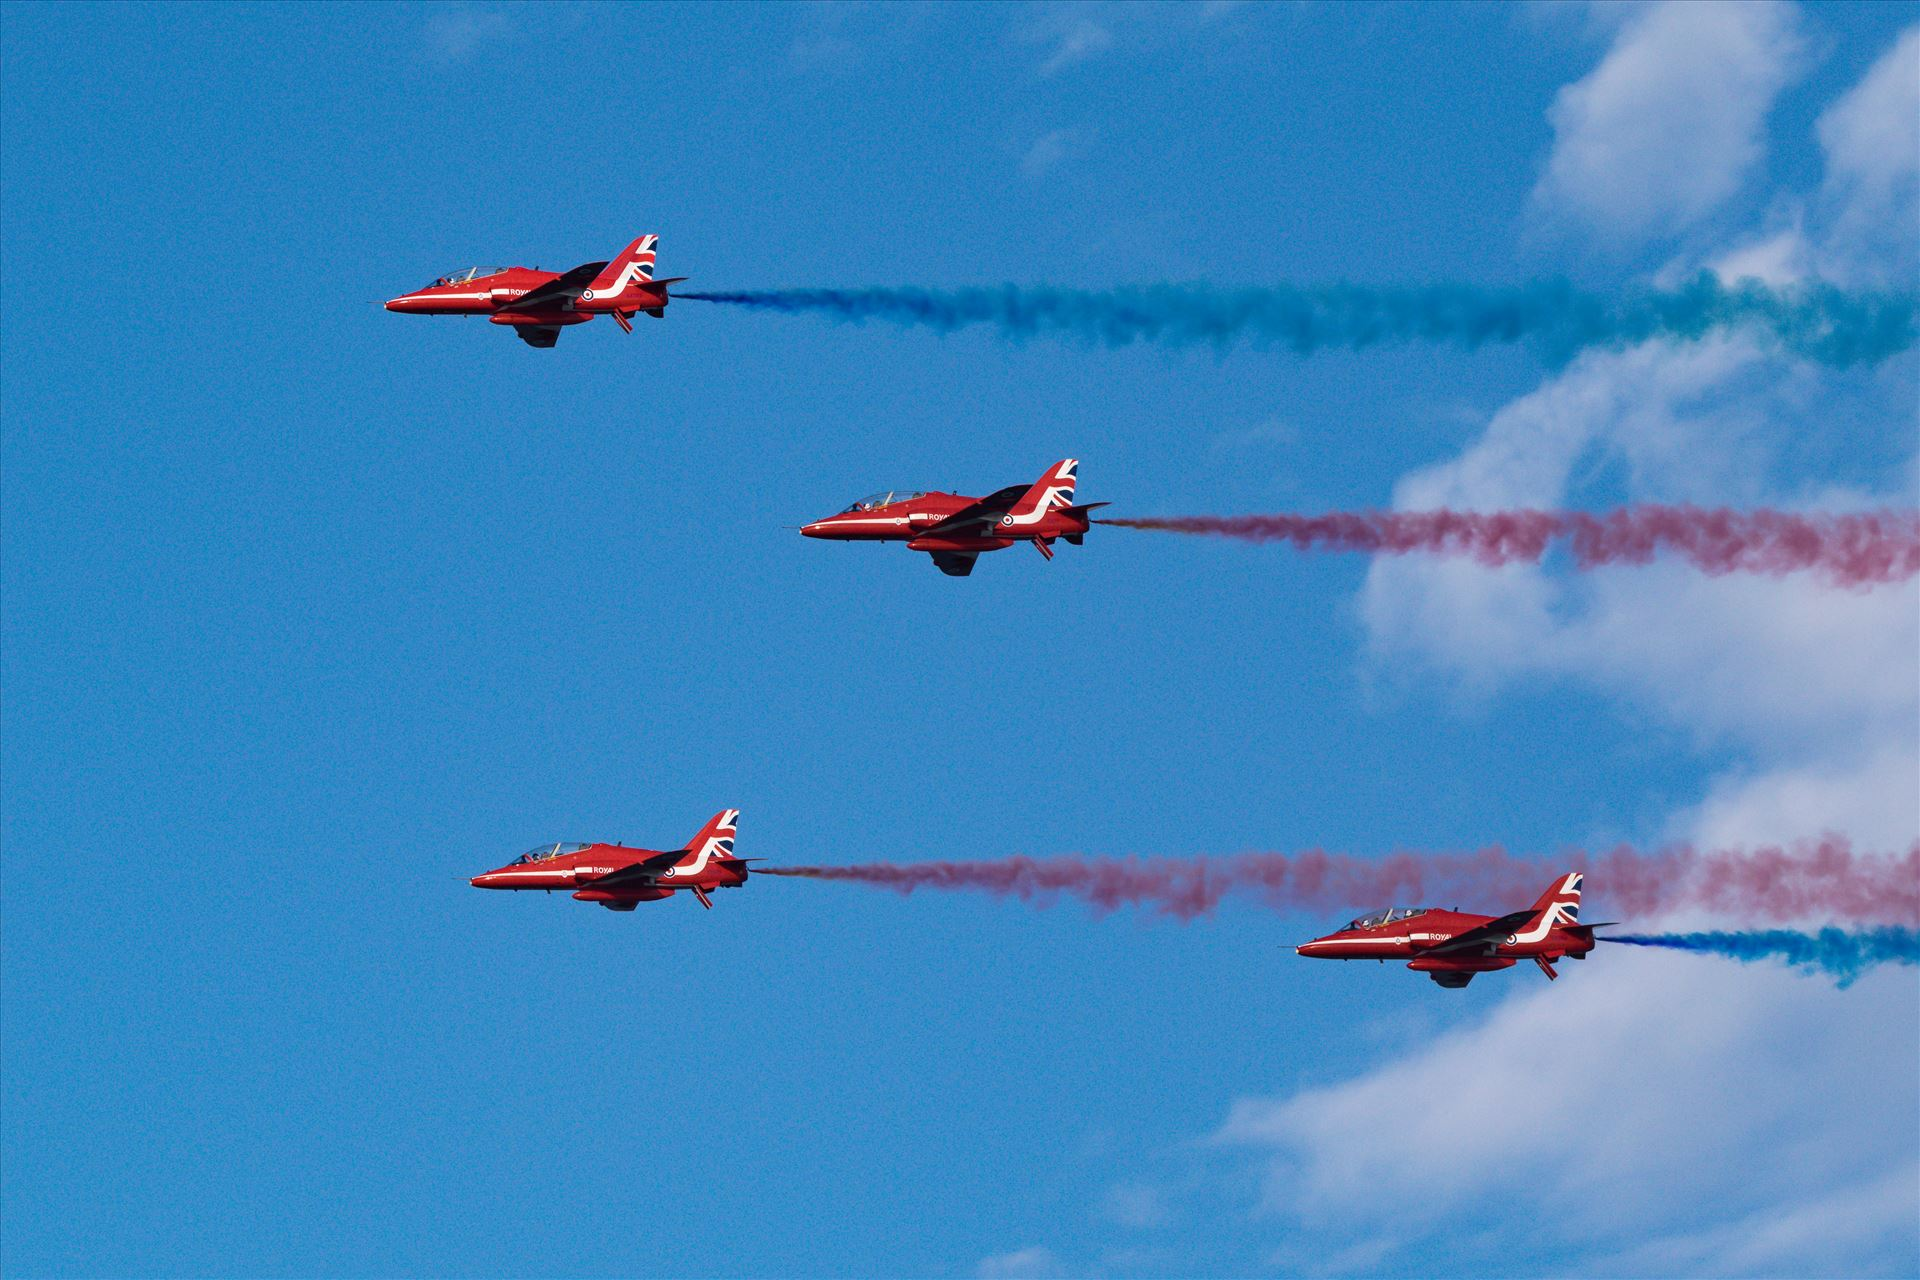 RAF Red Arrows Fly By - Taken in 2017 at Sunderland International Airshow by AJ Stoves Photography